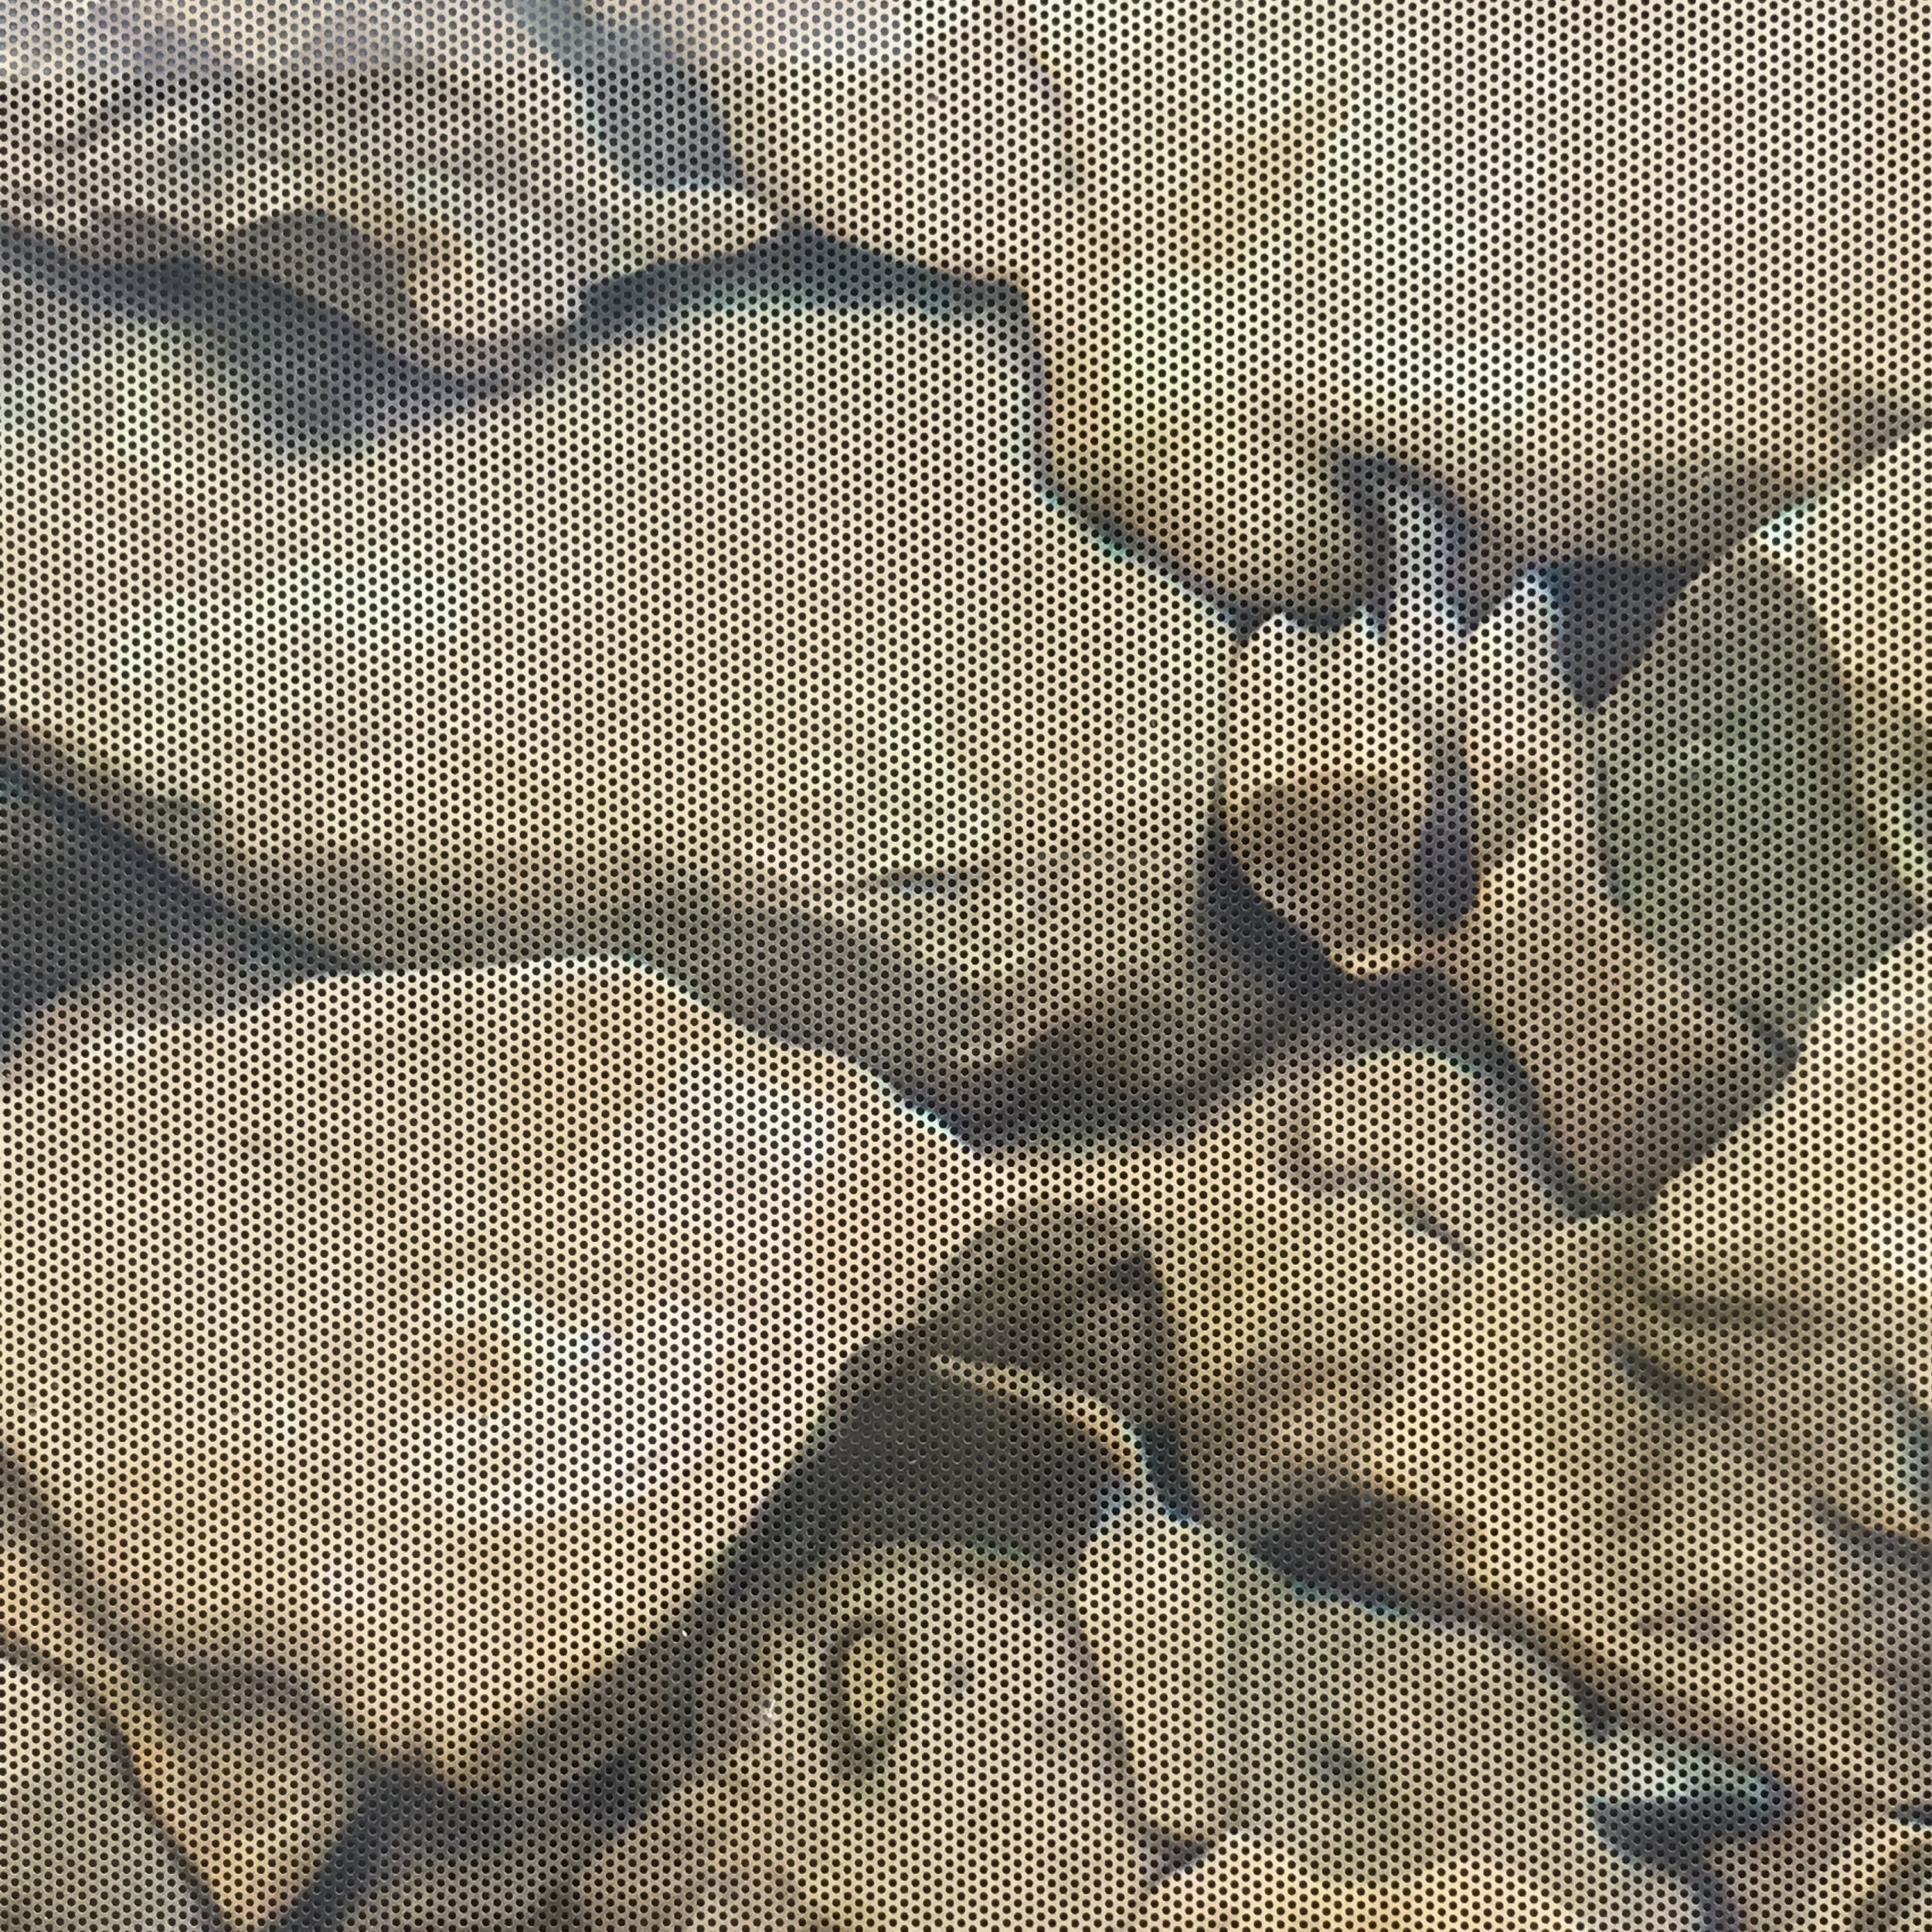 detail of a window decal (rocks)